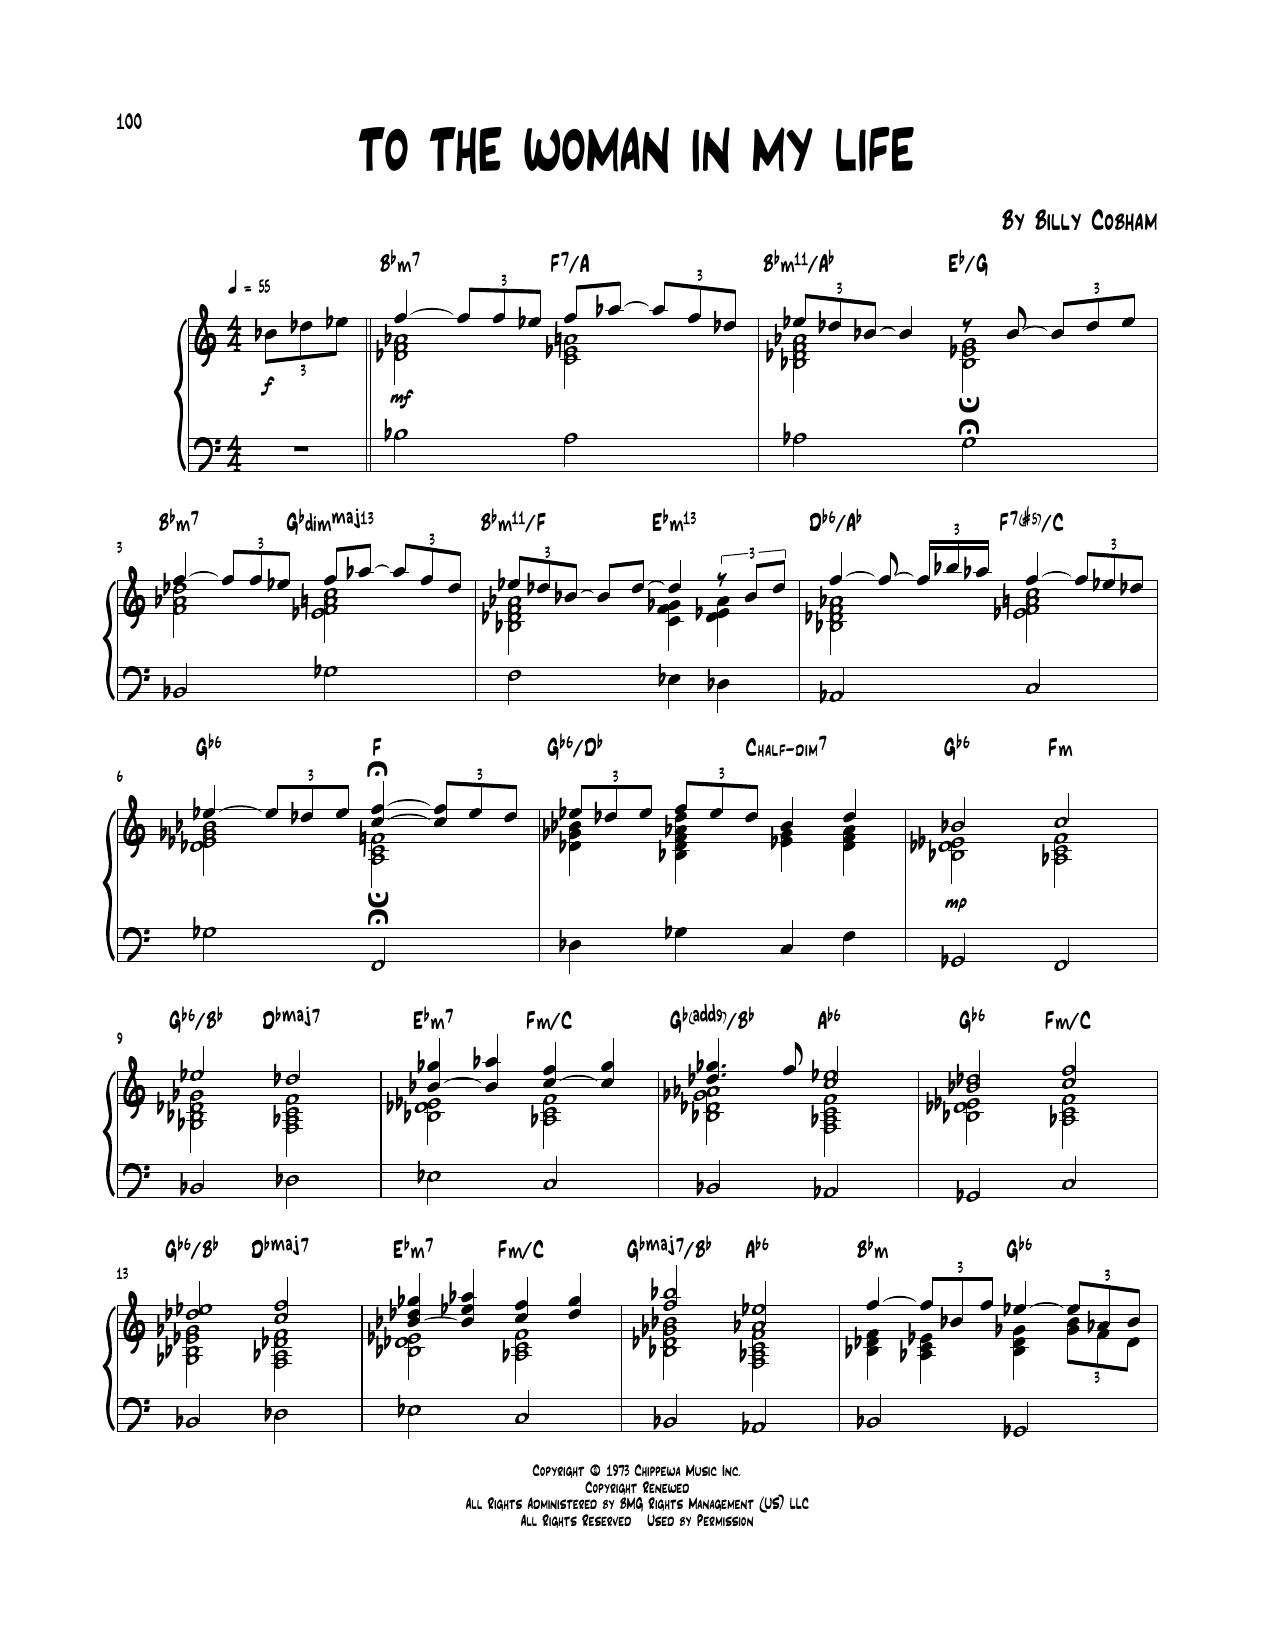 Billy Cobham 'To The Woman In My Life' Sheet Music Notes, Chords   Download  Printable Piano Transcription - SKU: 252020